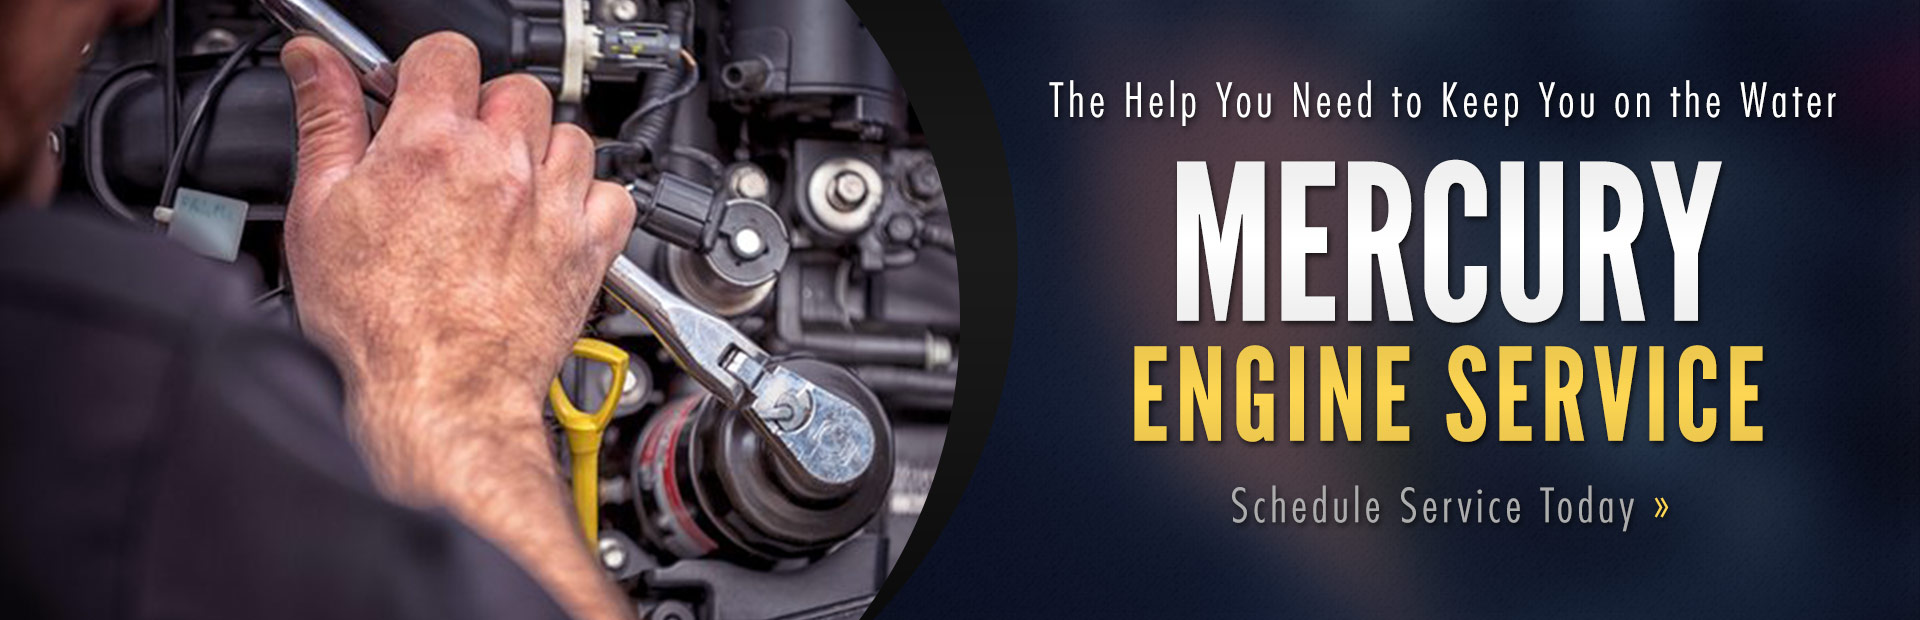 Mercury Engine Service: Click here to schedule service today.